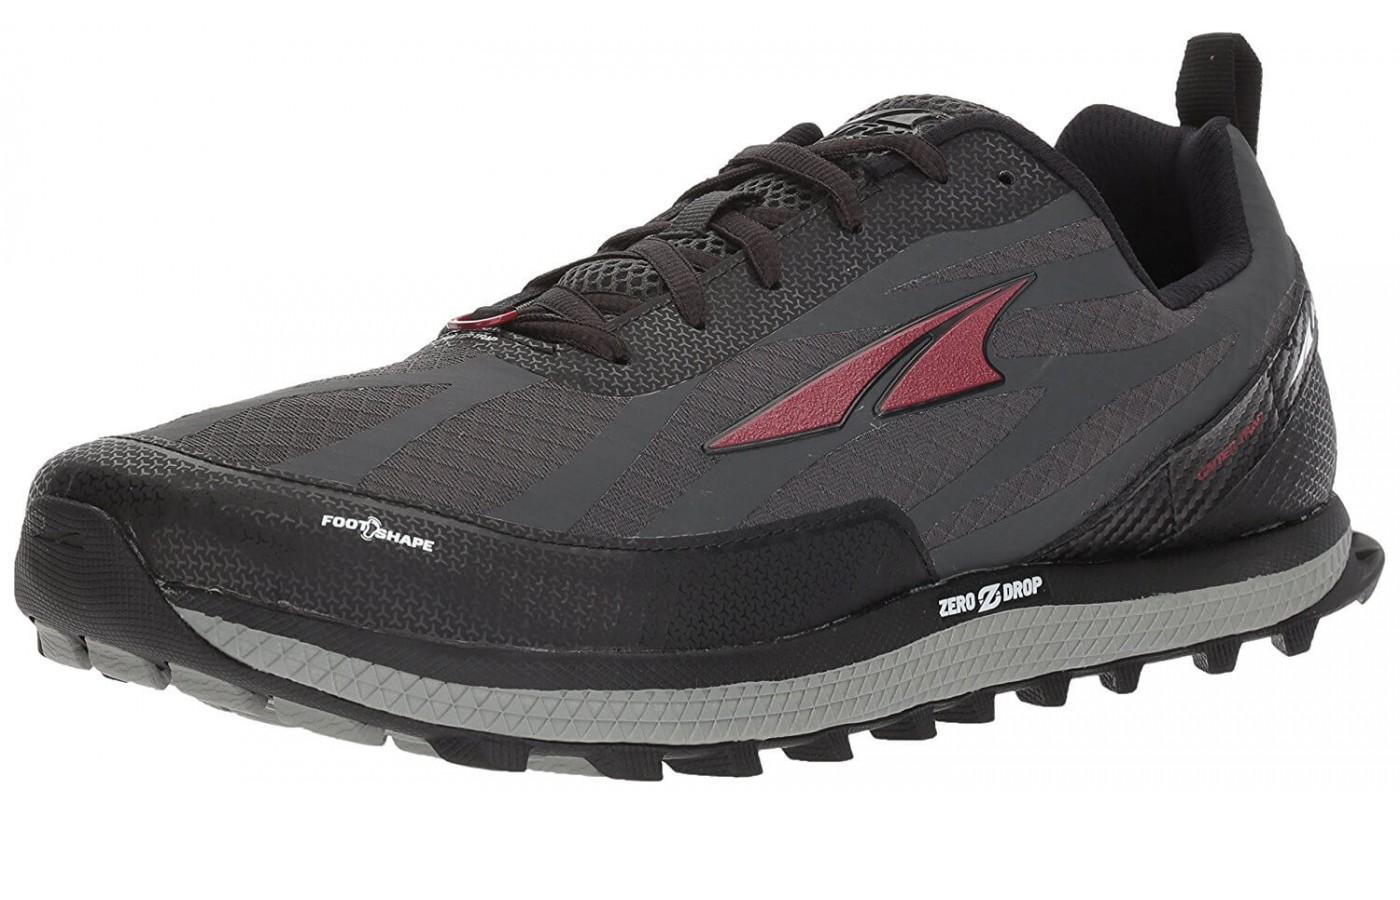 The Altra Superior 3.5 is a trail shoe that offers decent performance in a wide range of environments